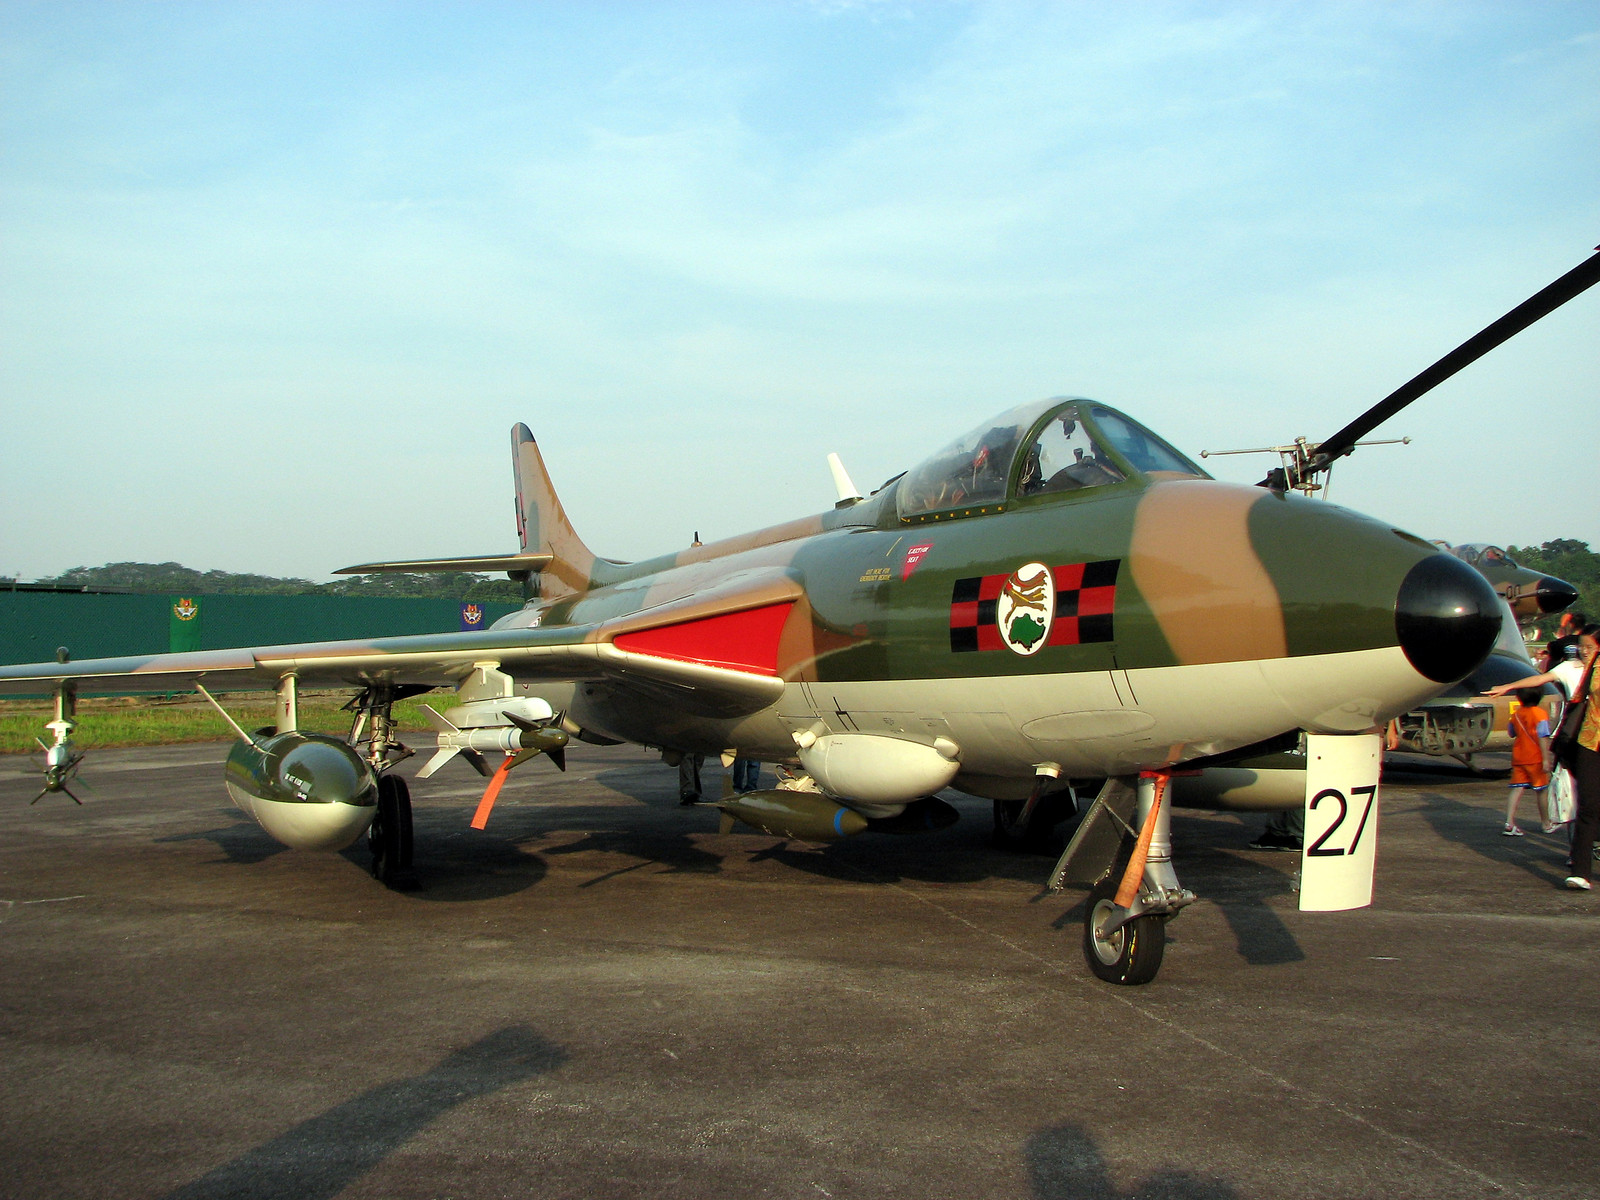 Hawker Hunter Wikipedia Old Electrical Wiring Http Wwwdiychatroomcom F18 Oldelectrical Republic Of Singapore Air Forceedit